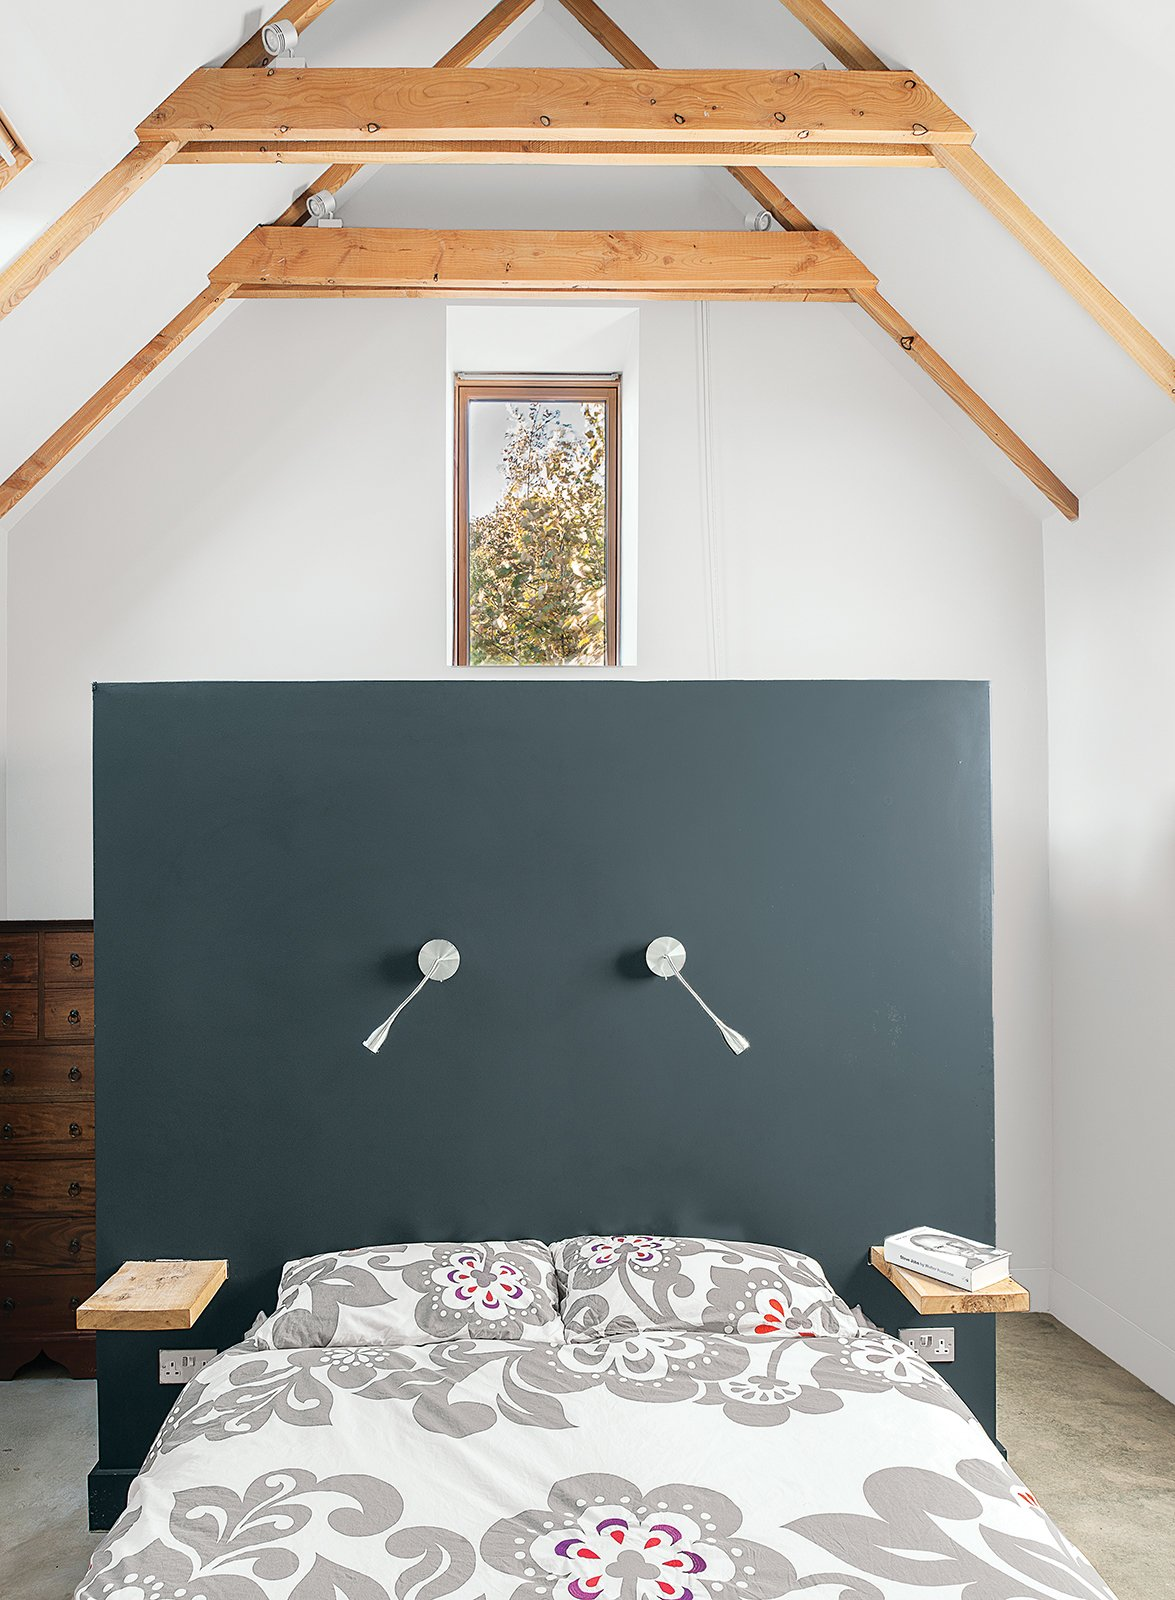 Designer Sue Macintosh chose the Farrow & Ball Off-Black paint for the master bedroom. Tagged: Bedroom, Bed, and Wall Lighting.  Bedrooms by Dwell from This Farmhouse is a Cor-Ten Steel-Clad Dream